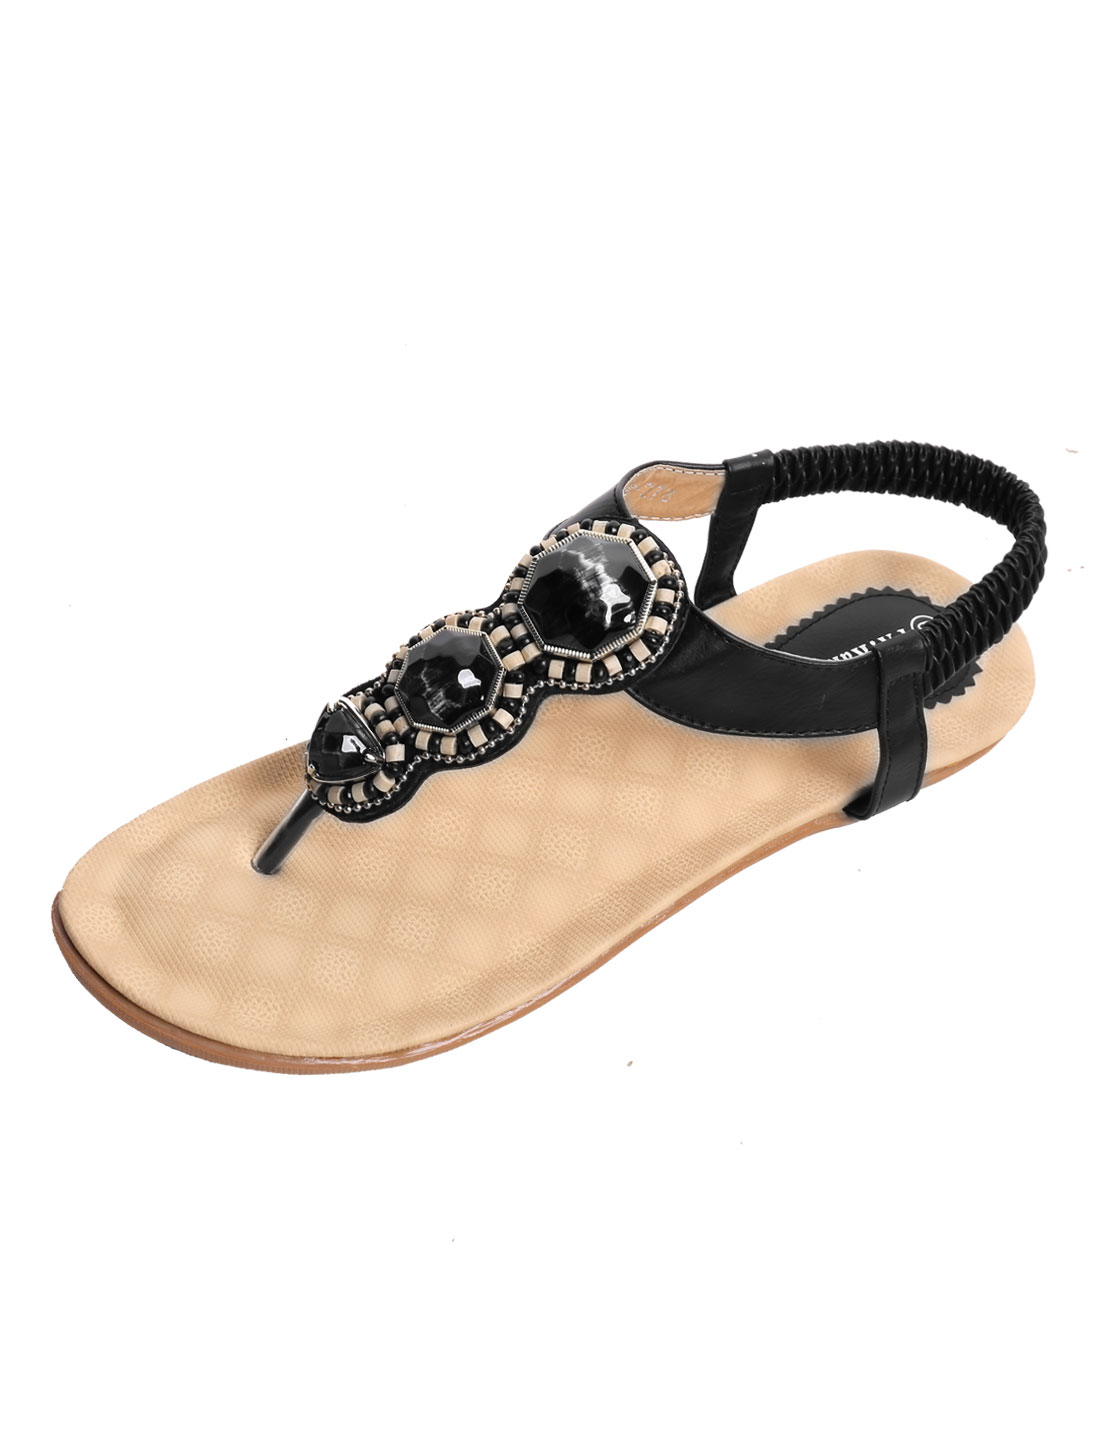 Women Rhinestones Embellished Flat Sandals Black US 7